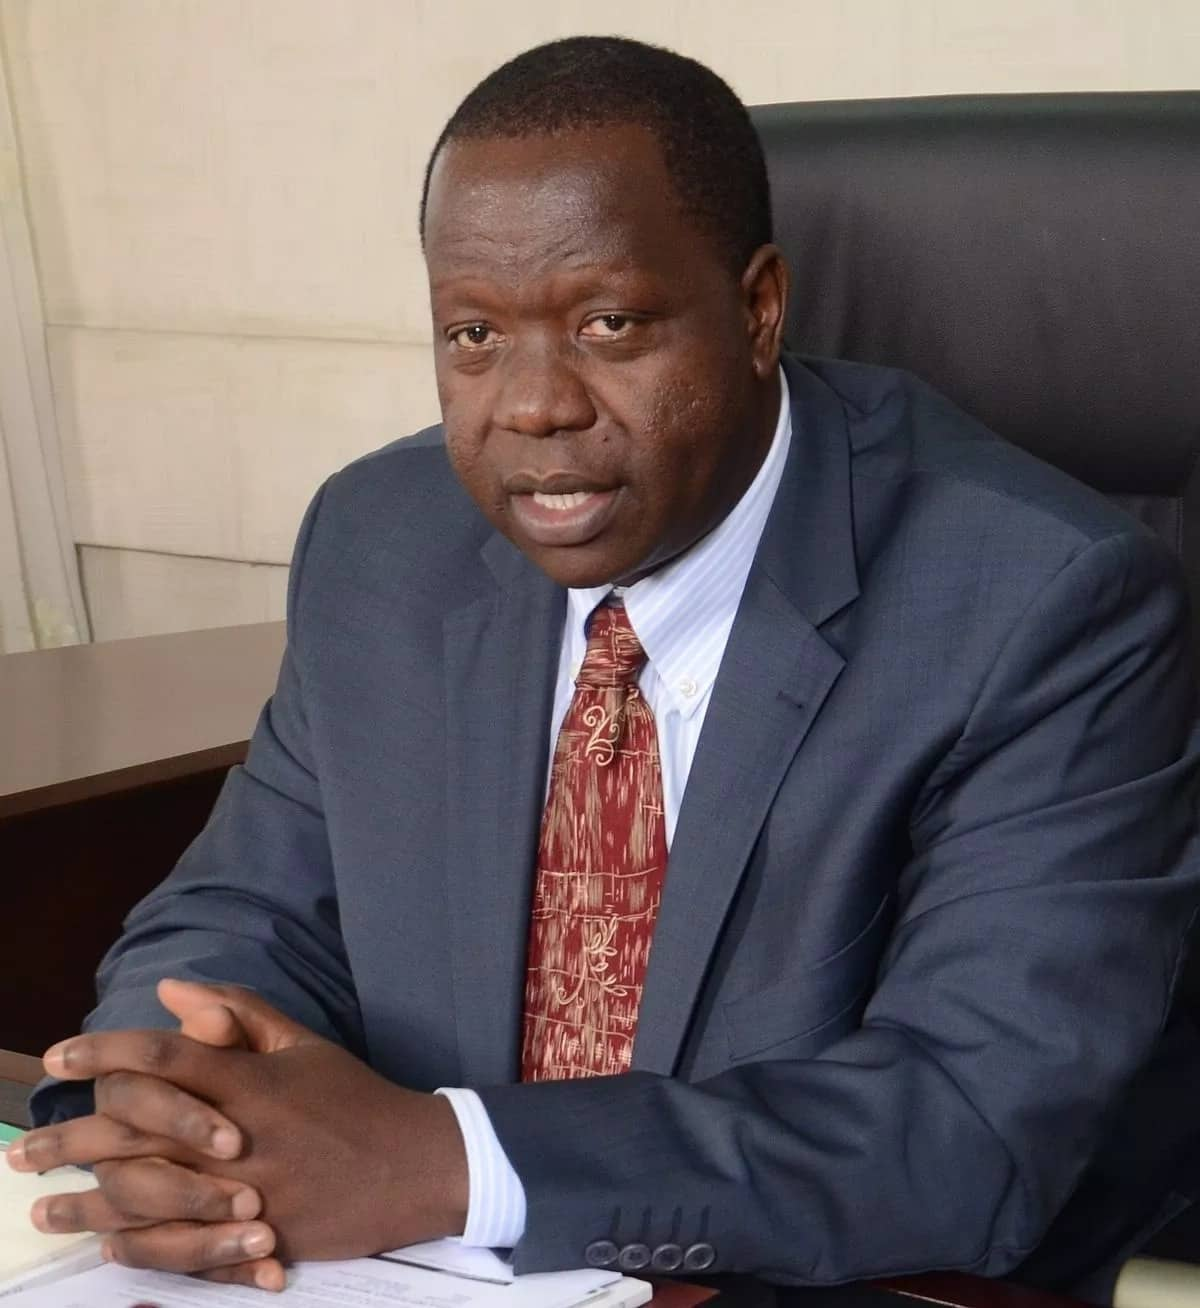 NASA had hired goons to kill Kenyans and blame police - Matiang'i